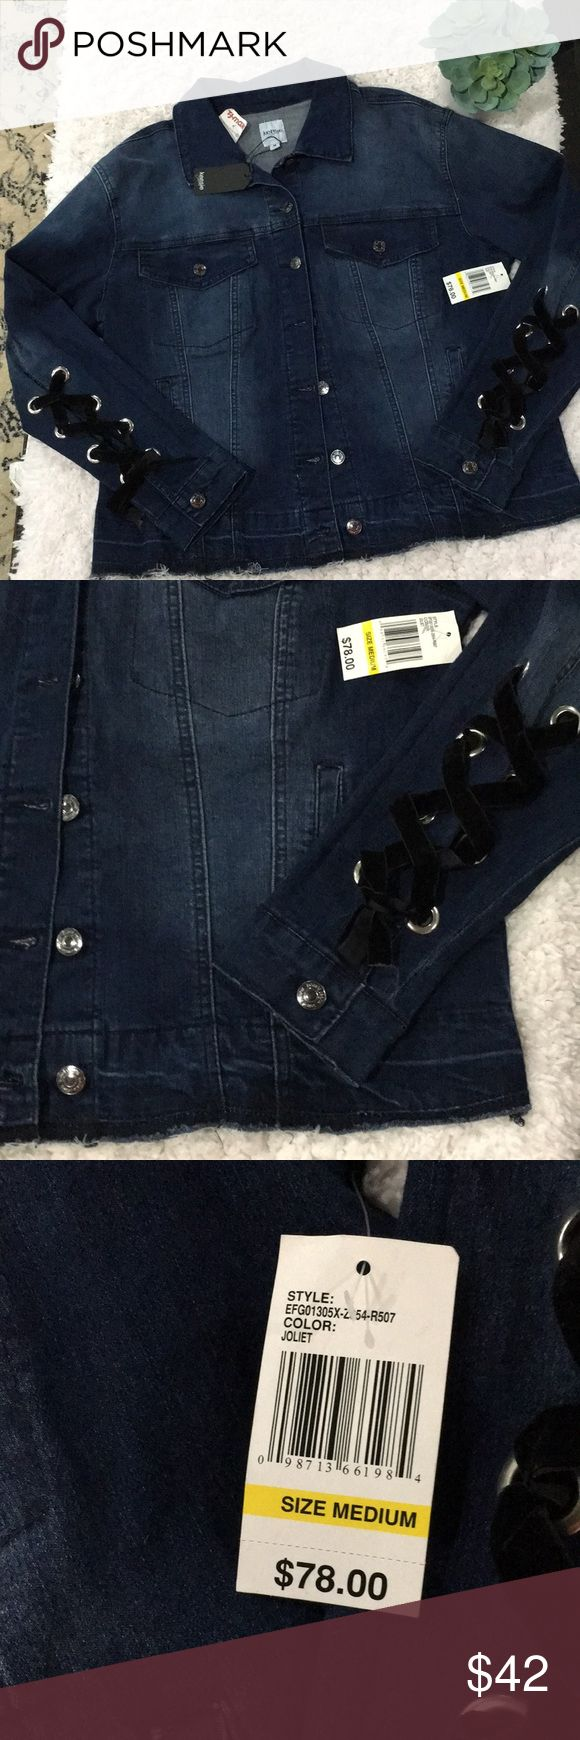 Kensie Jeans Jacket with  size M New with tags Kensie Jeans Jacket with black velvet accent ties in arms. Bottom hem is tagged unfinished. So awesome !!!  Button up front with 2 top pockets with button and 2 bottom pockets. New with tags   Color: Joliet Kensie Jackets & Coats Jean Jackets